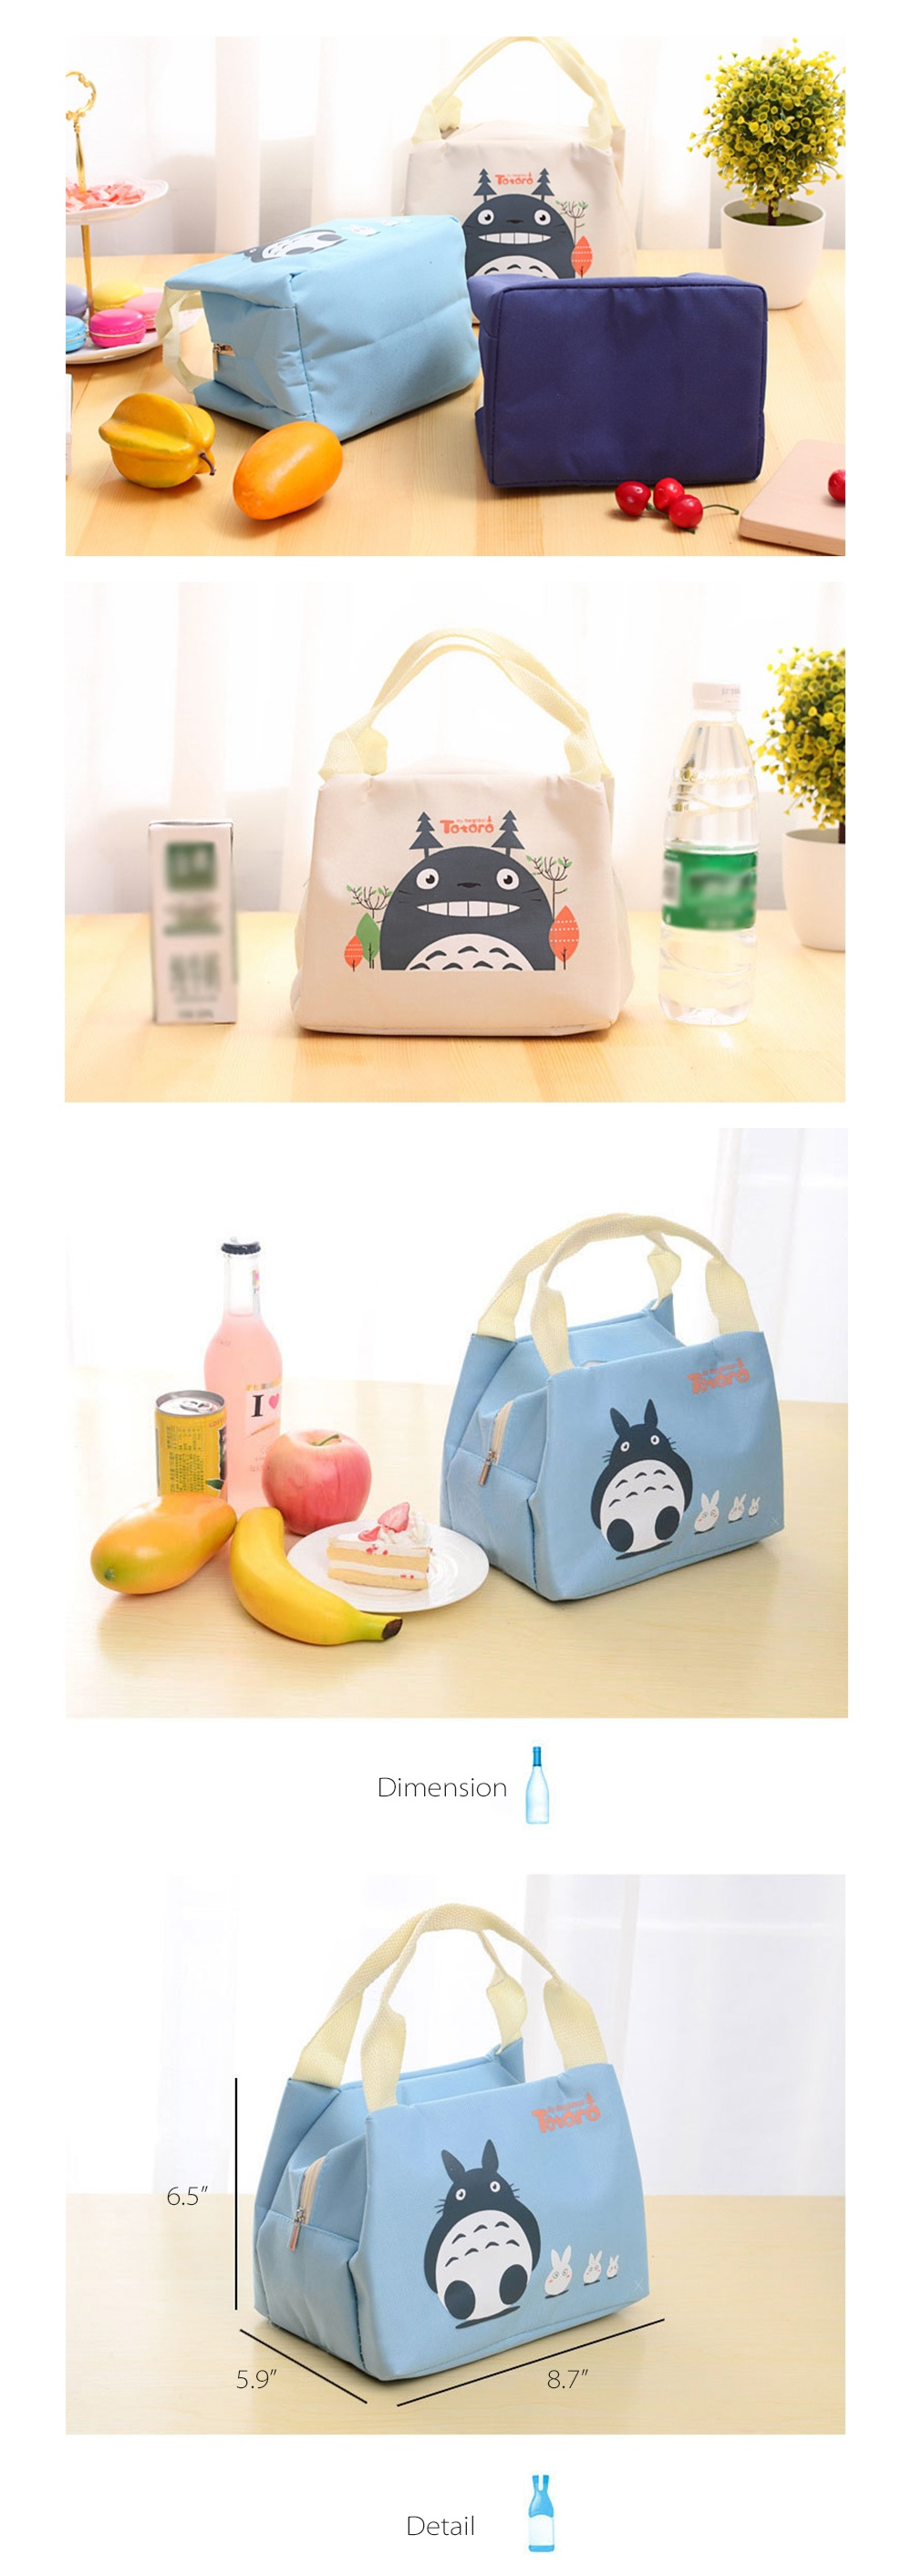 c4b9c444c62c Totoro Insulated Lunch Bags from Apollo Box